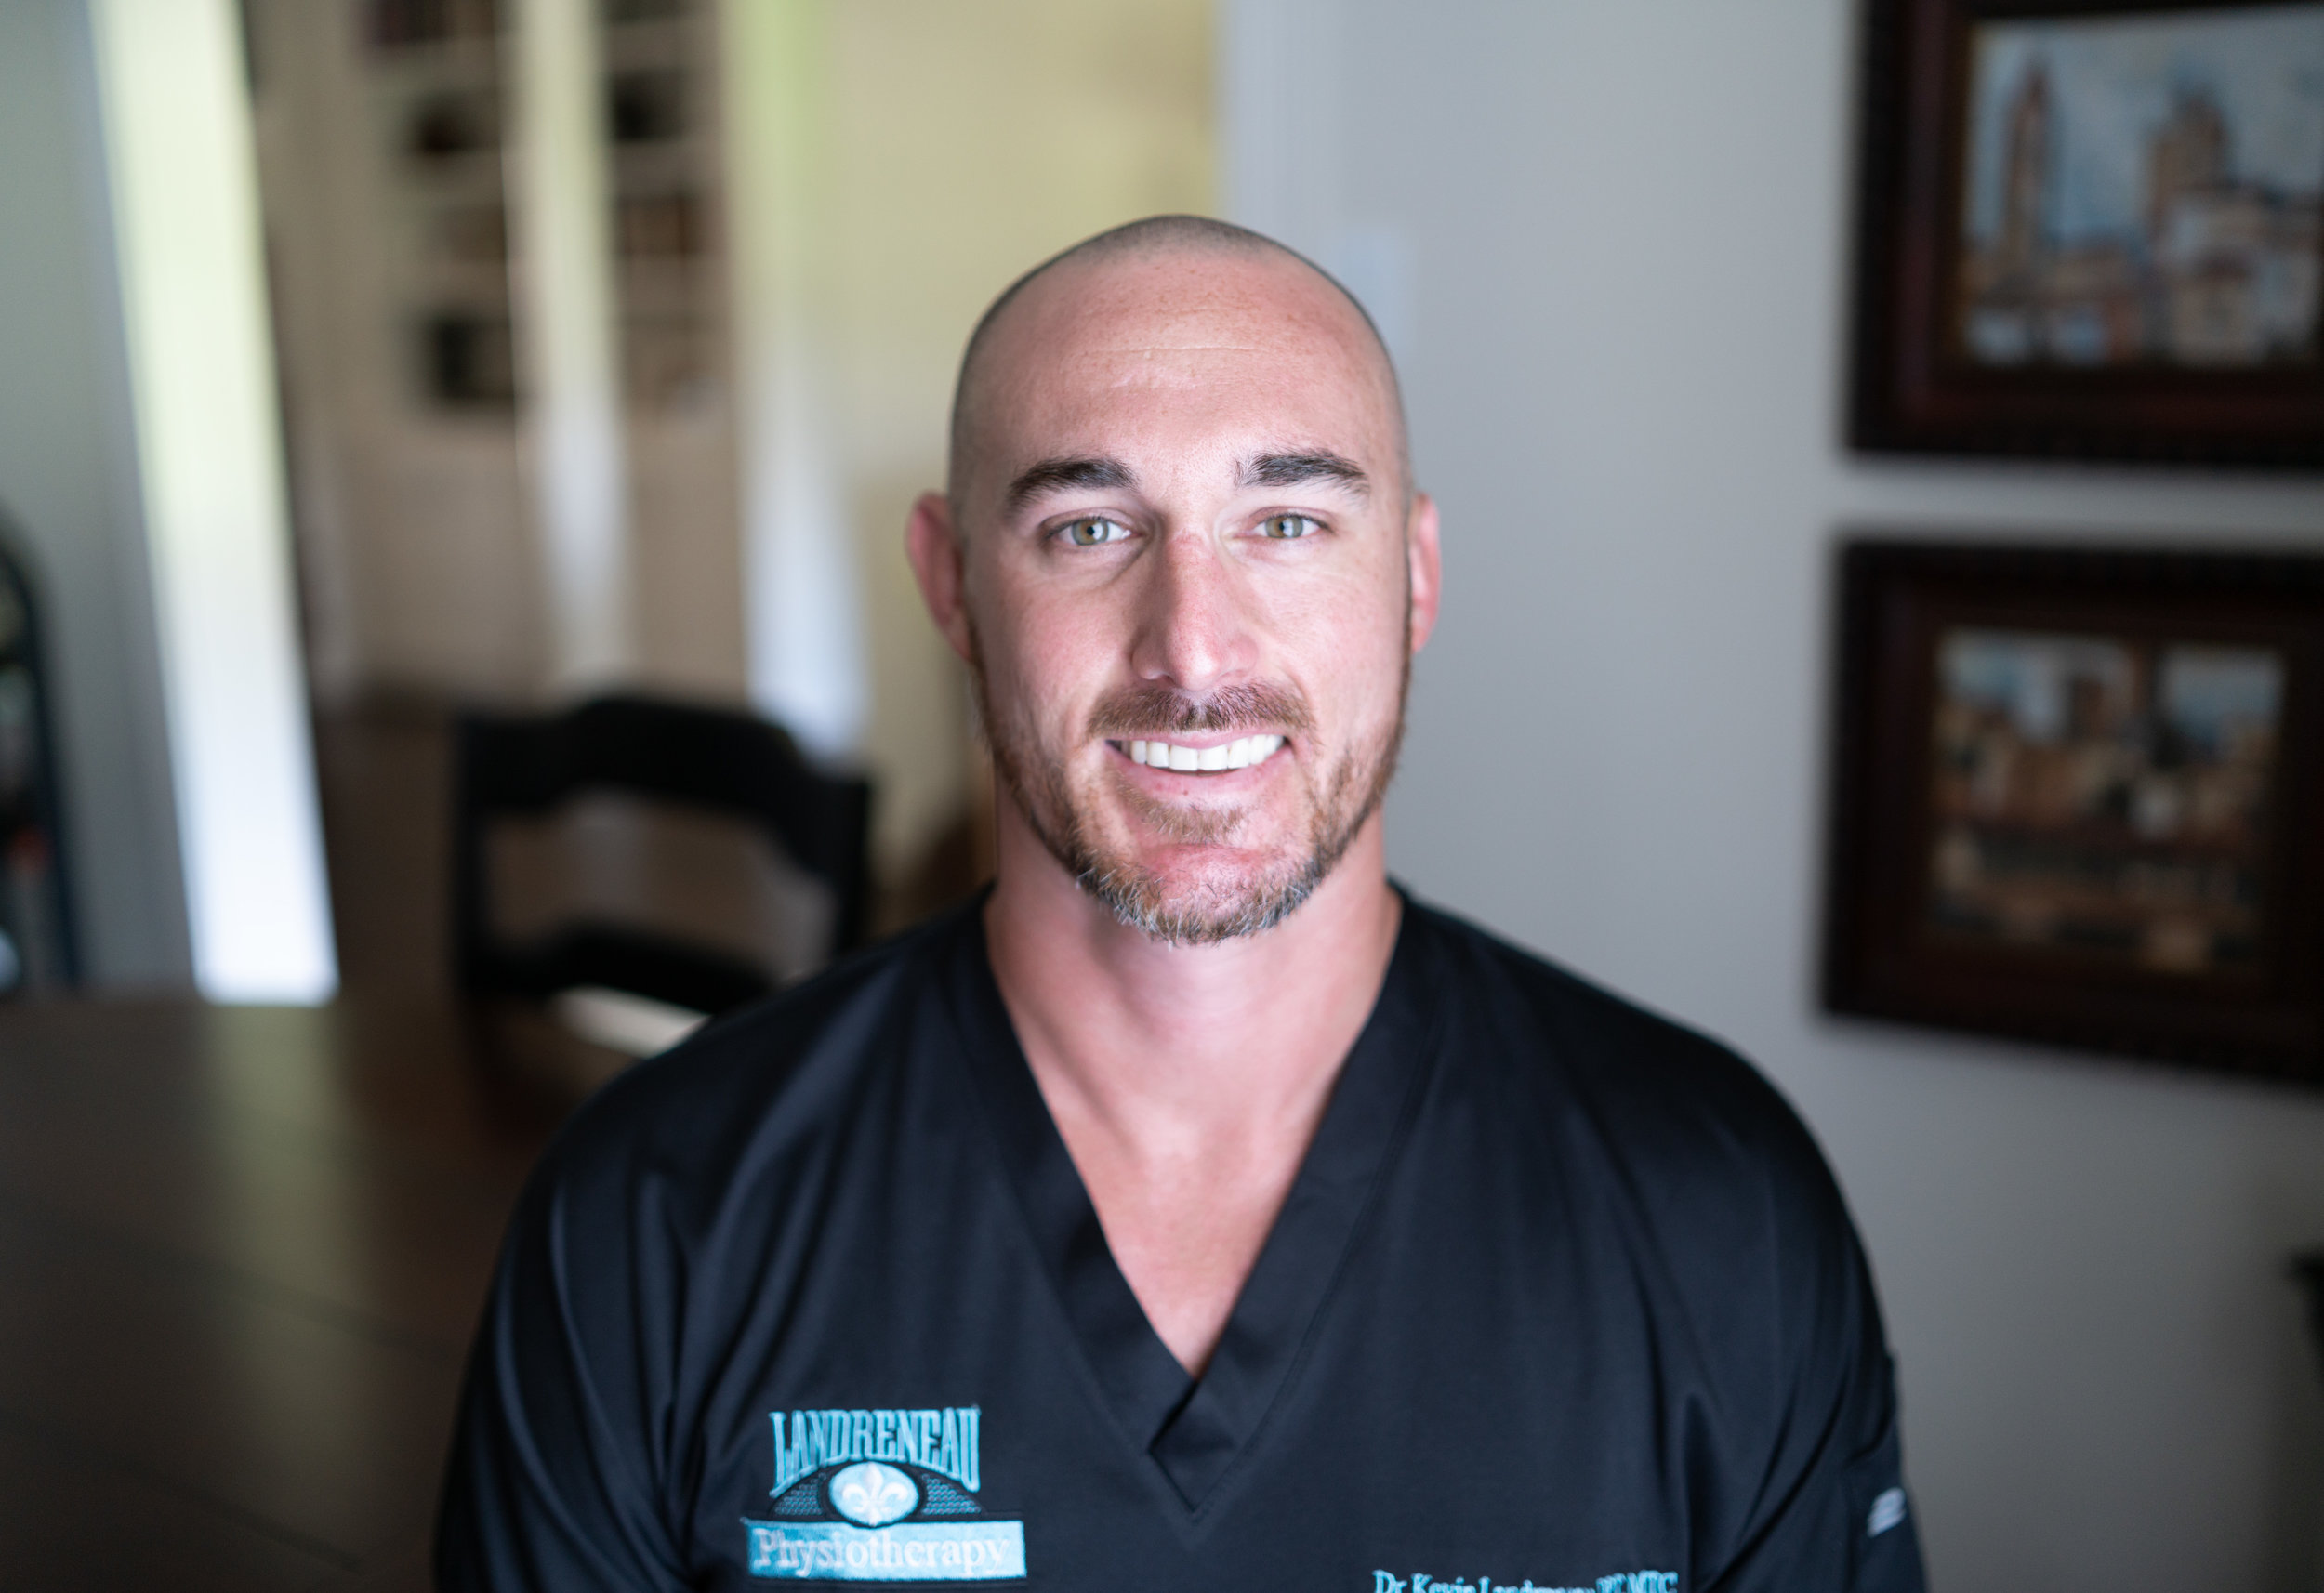 Dr. Kevin Landreneau DPT, MTC - Graduated with his Doctorate of Physical Therapy in 2012. Kevin is passionate about using his education and skill set to help others achieve an optimal state of health and wellness. He specializes in joint manipulation, dry needling and manual therapy techniques designed to address restrictions of the soft tissue (muscle, connective and myofascial restrictions).